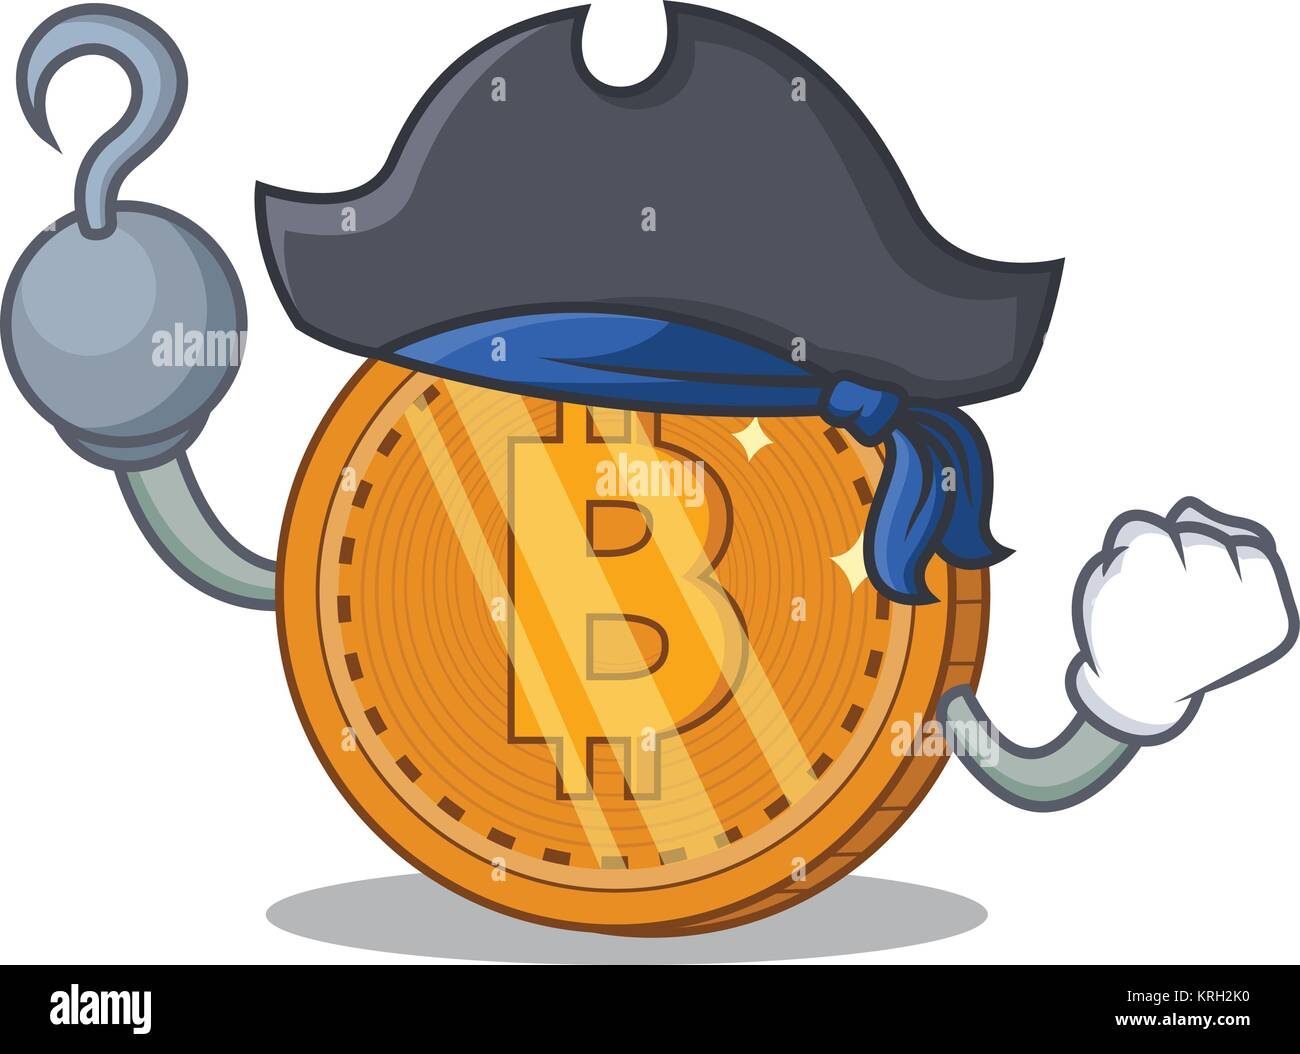 Pirate bitcoin coin character cartoon - Stock Image